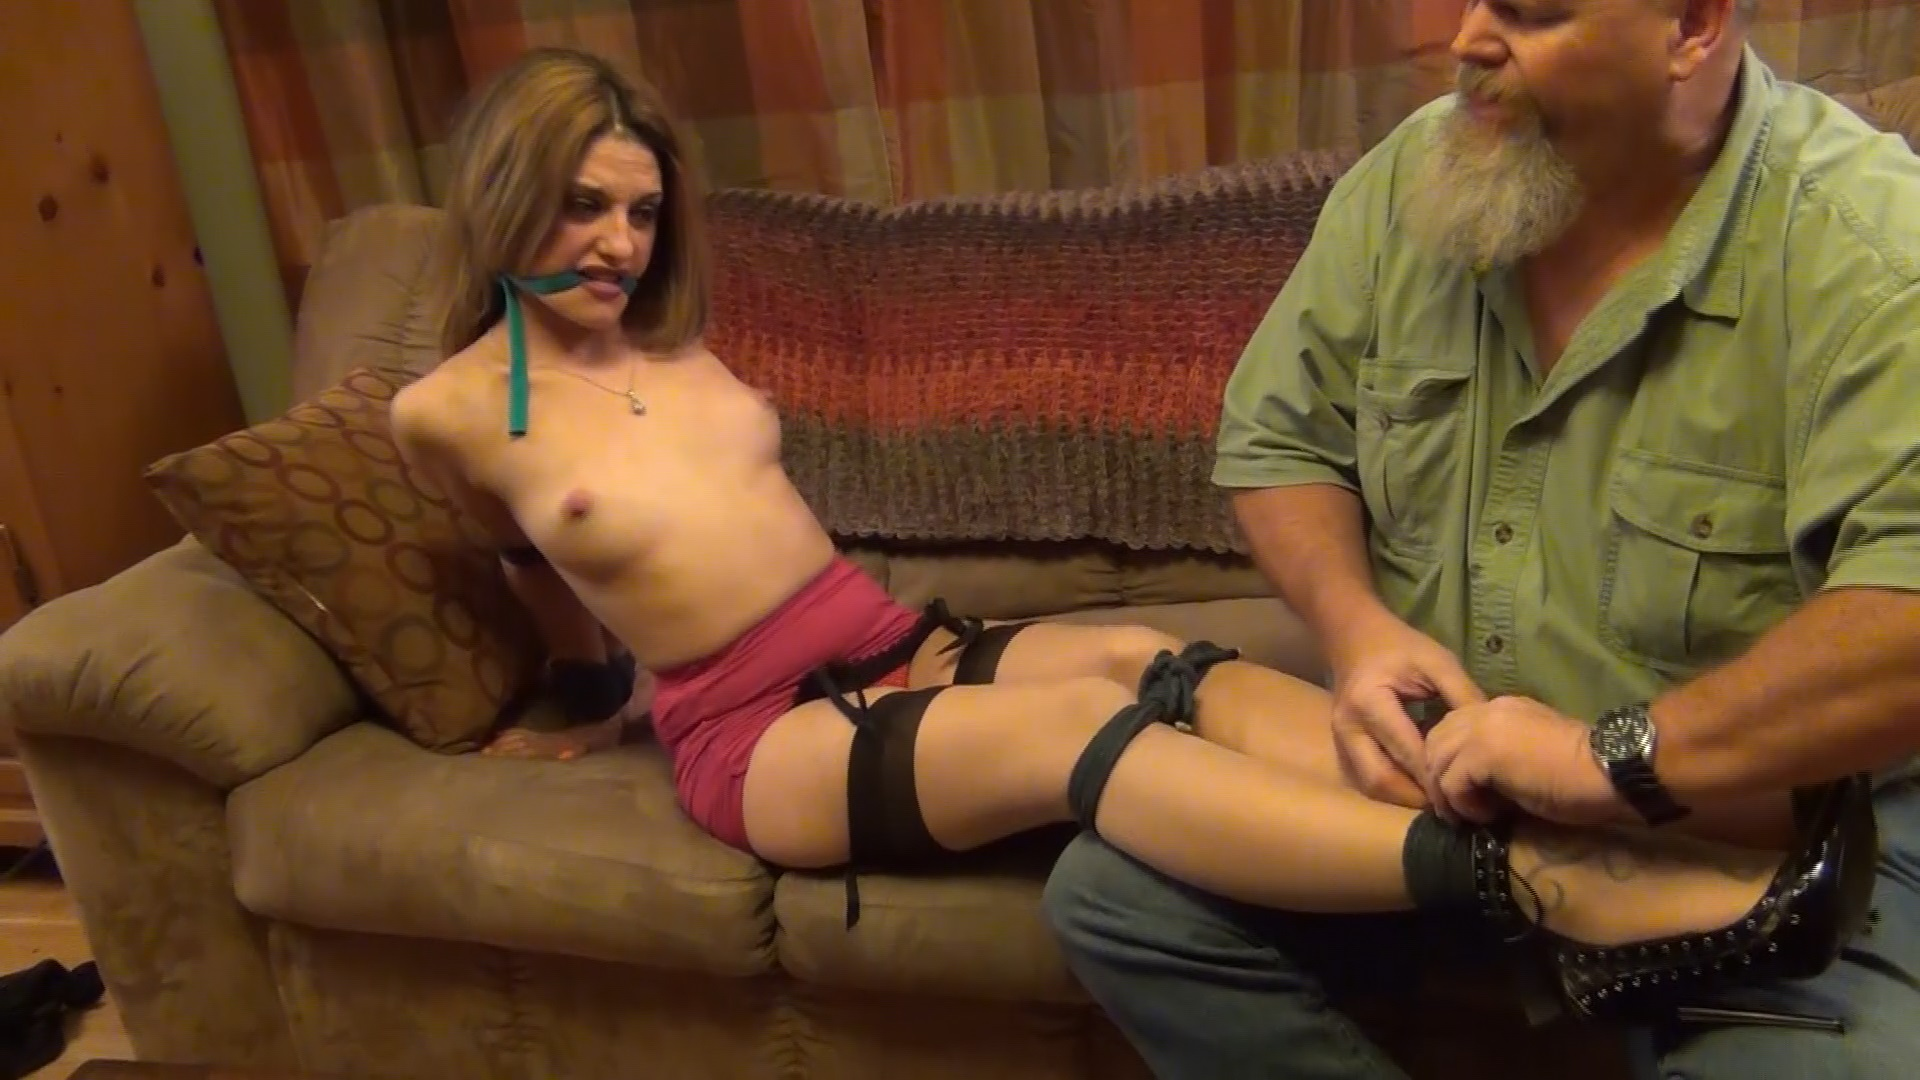 Briella Jaden Thinks She Wants Bondage